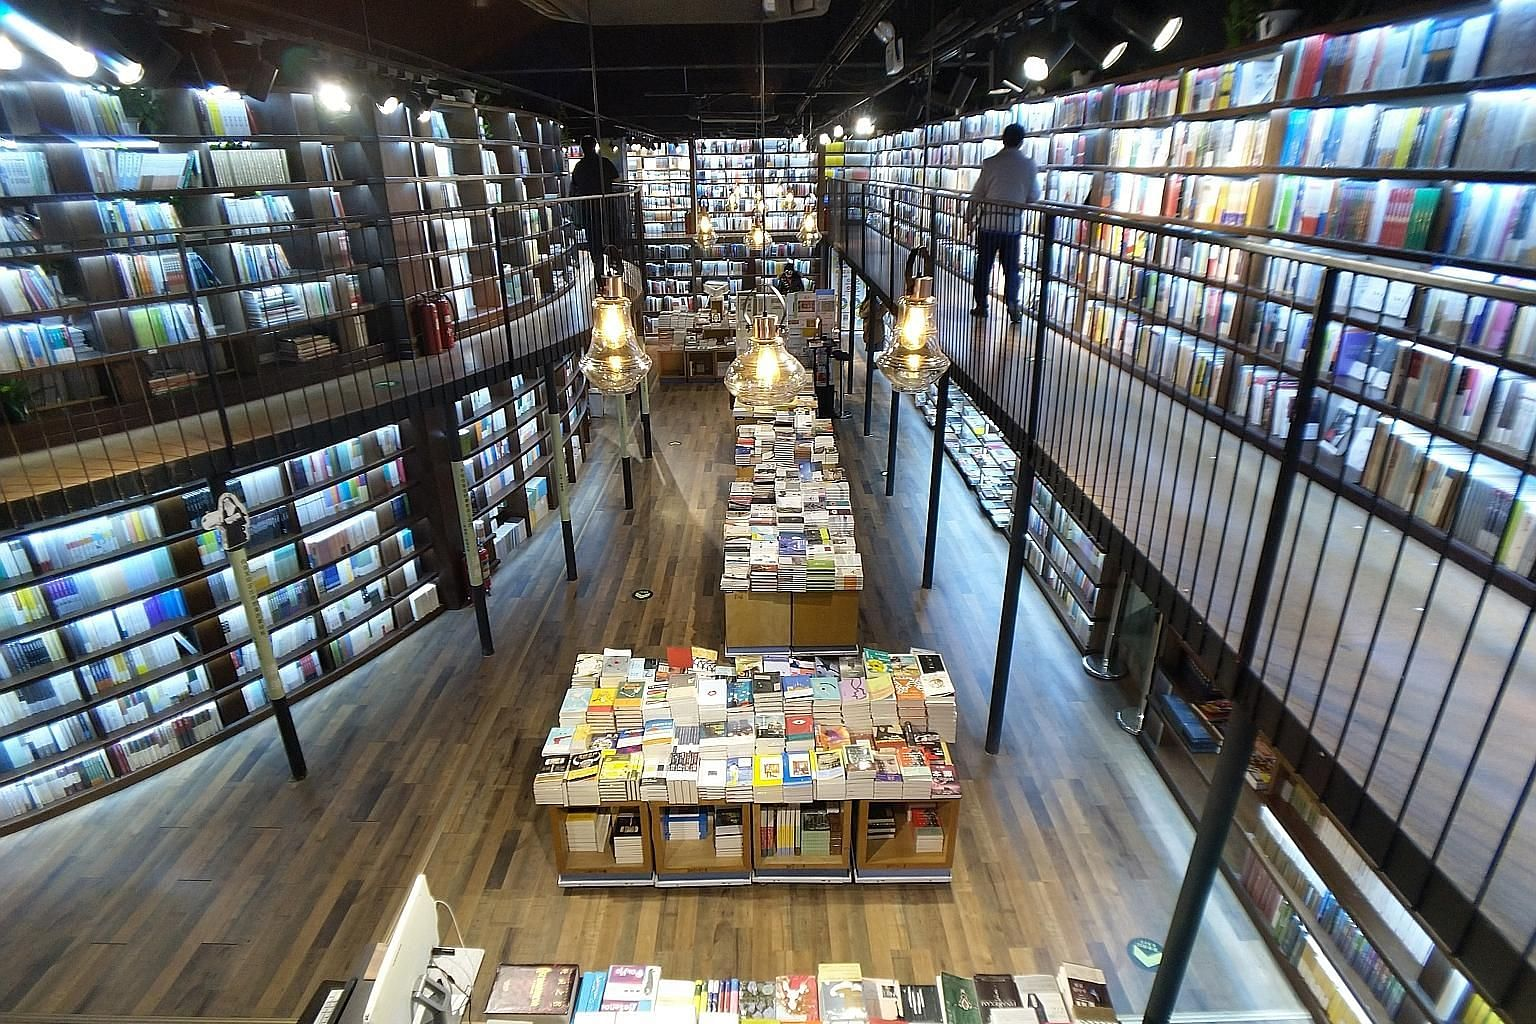 Sanlian Taofen, a 24-hour bookstore that opened in Beijing's Sanlitun neighbourhood last April, draws a steady late-night crowd through the week. Its attractions include an unusual layout of elevated walkways and two-storey bookshelves, as well as a